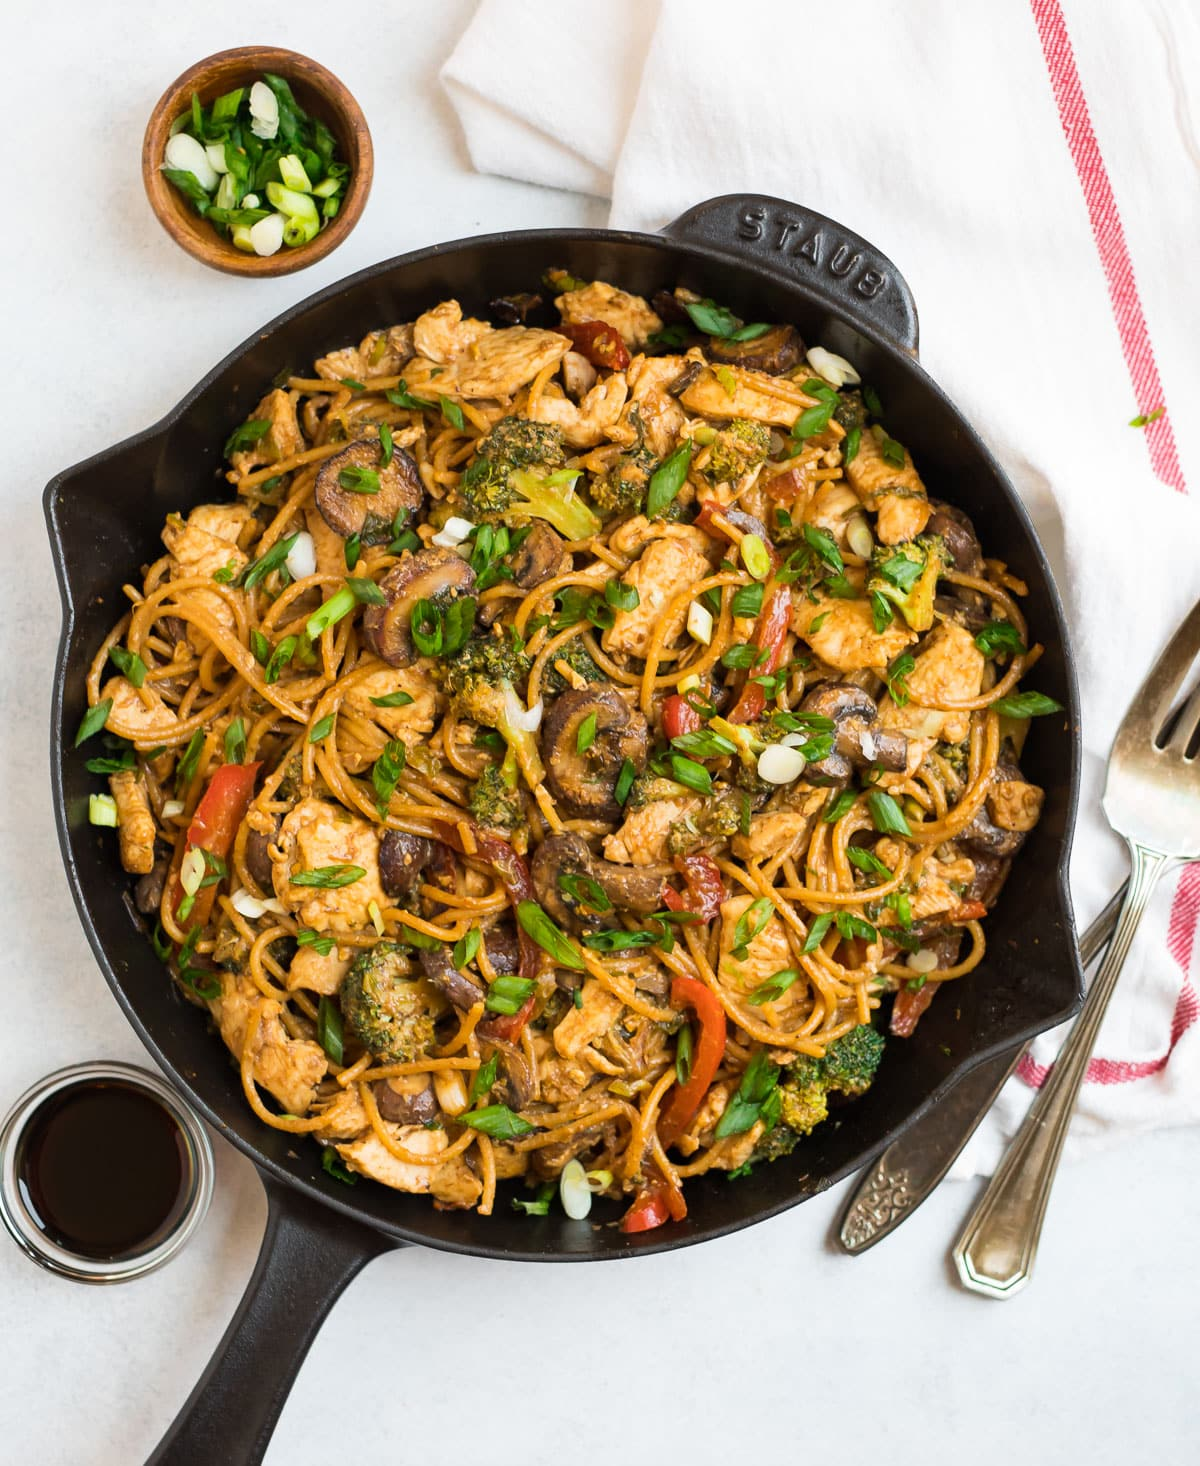 Noodle stir fry with chicken